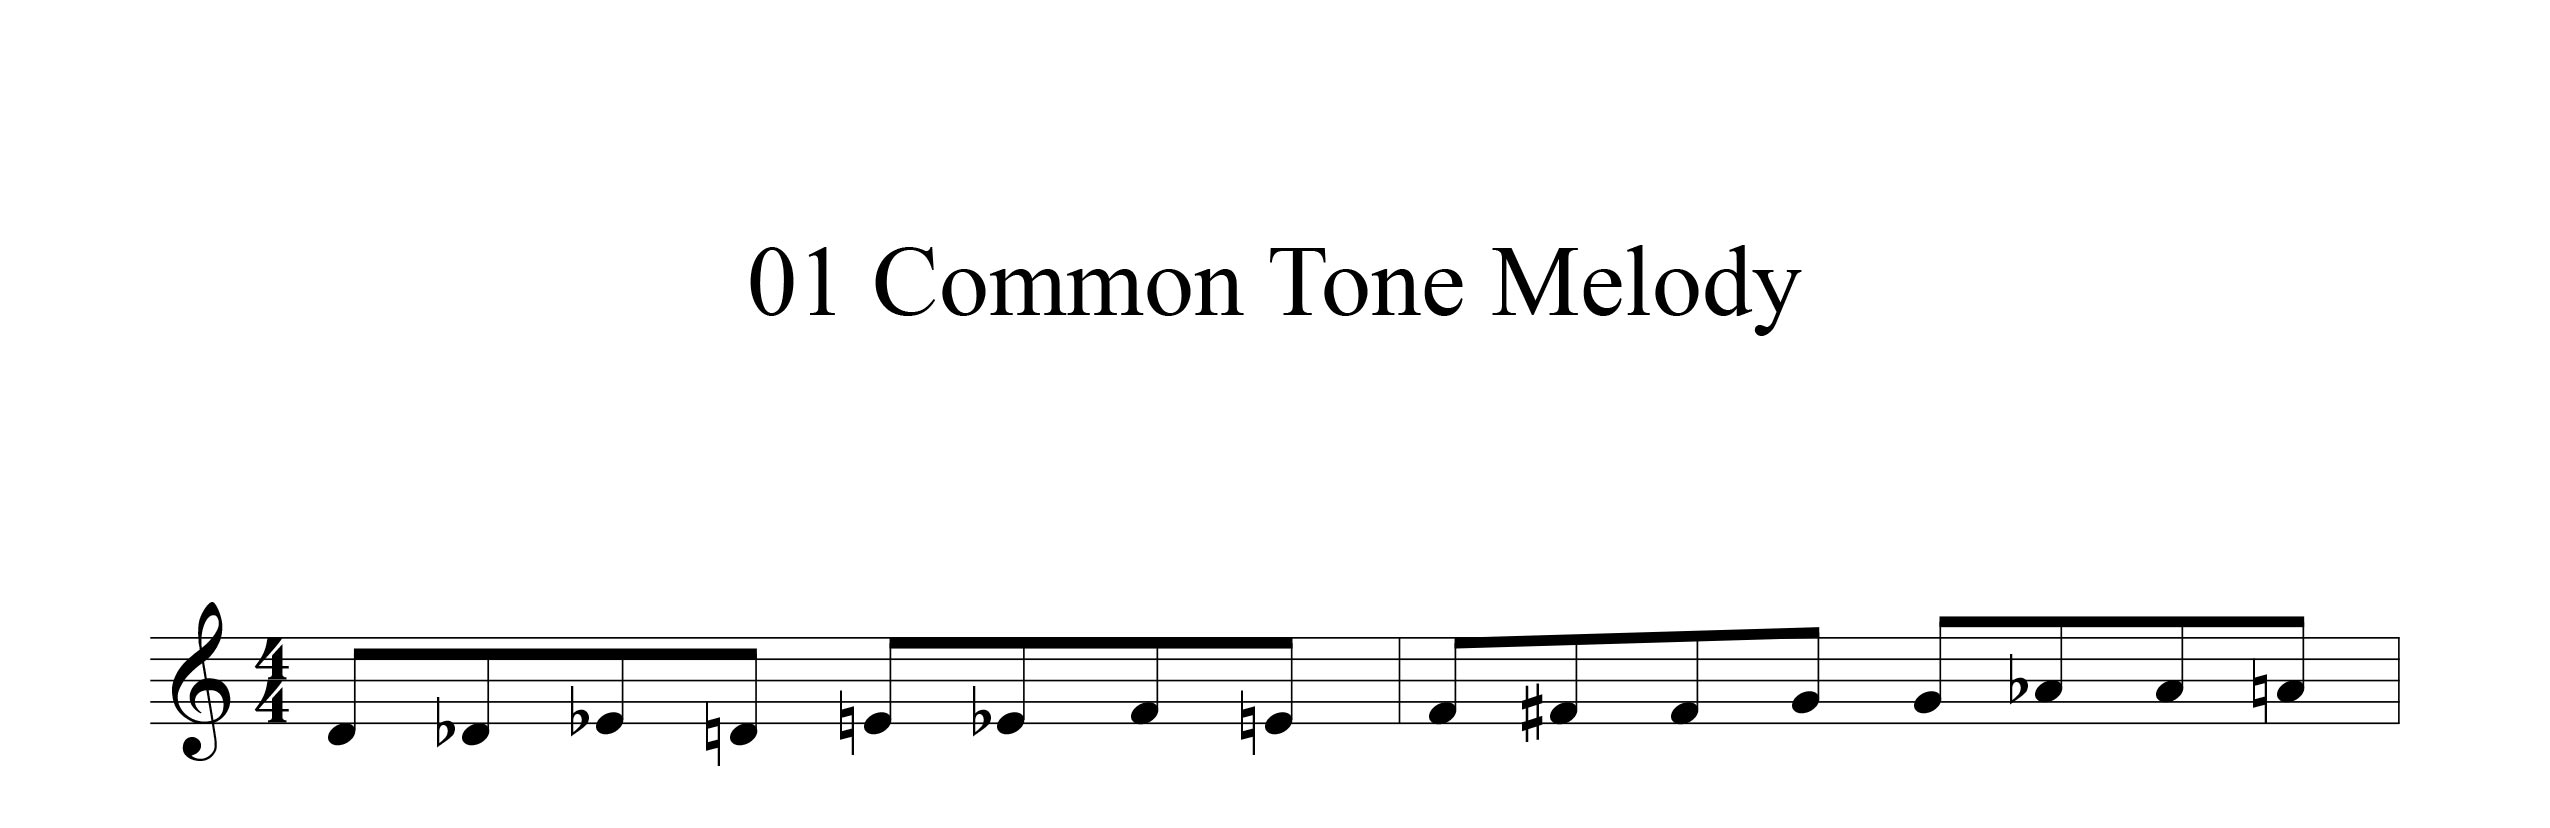 Melodic-Modulation-2-note-groups-Example-two-by-bruce-arnold-for-muse-eek-publishing-inc.